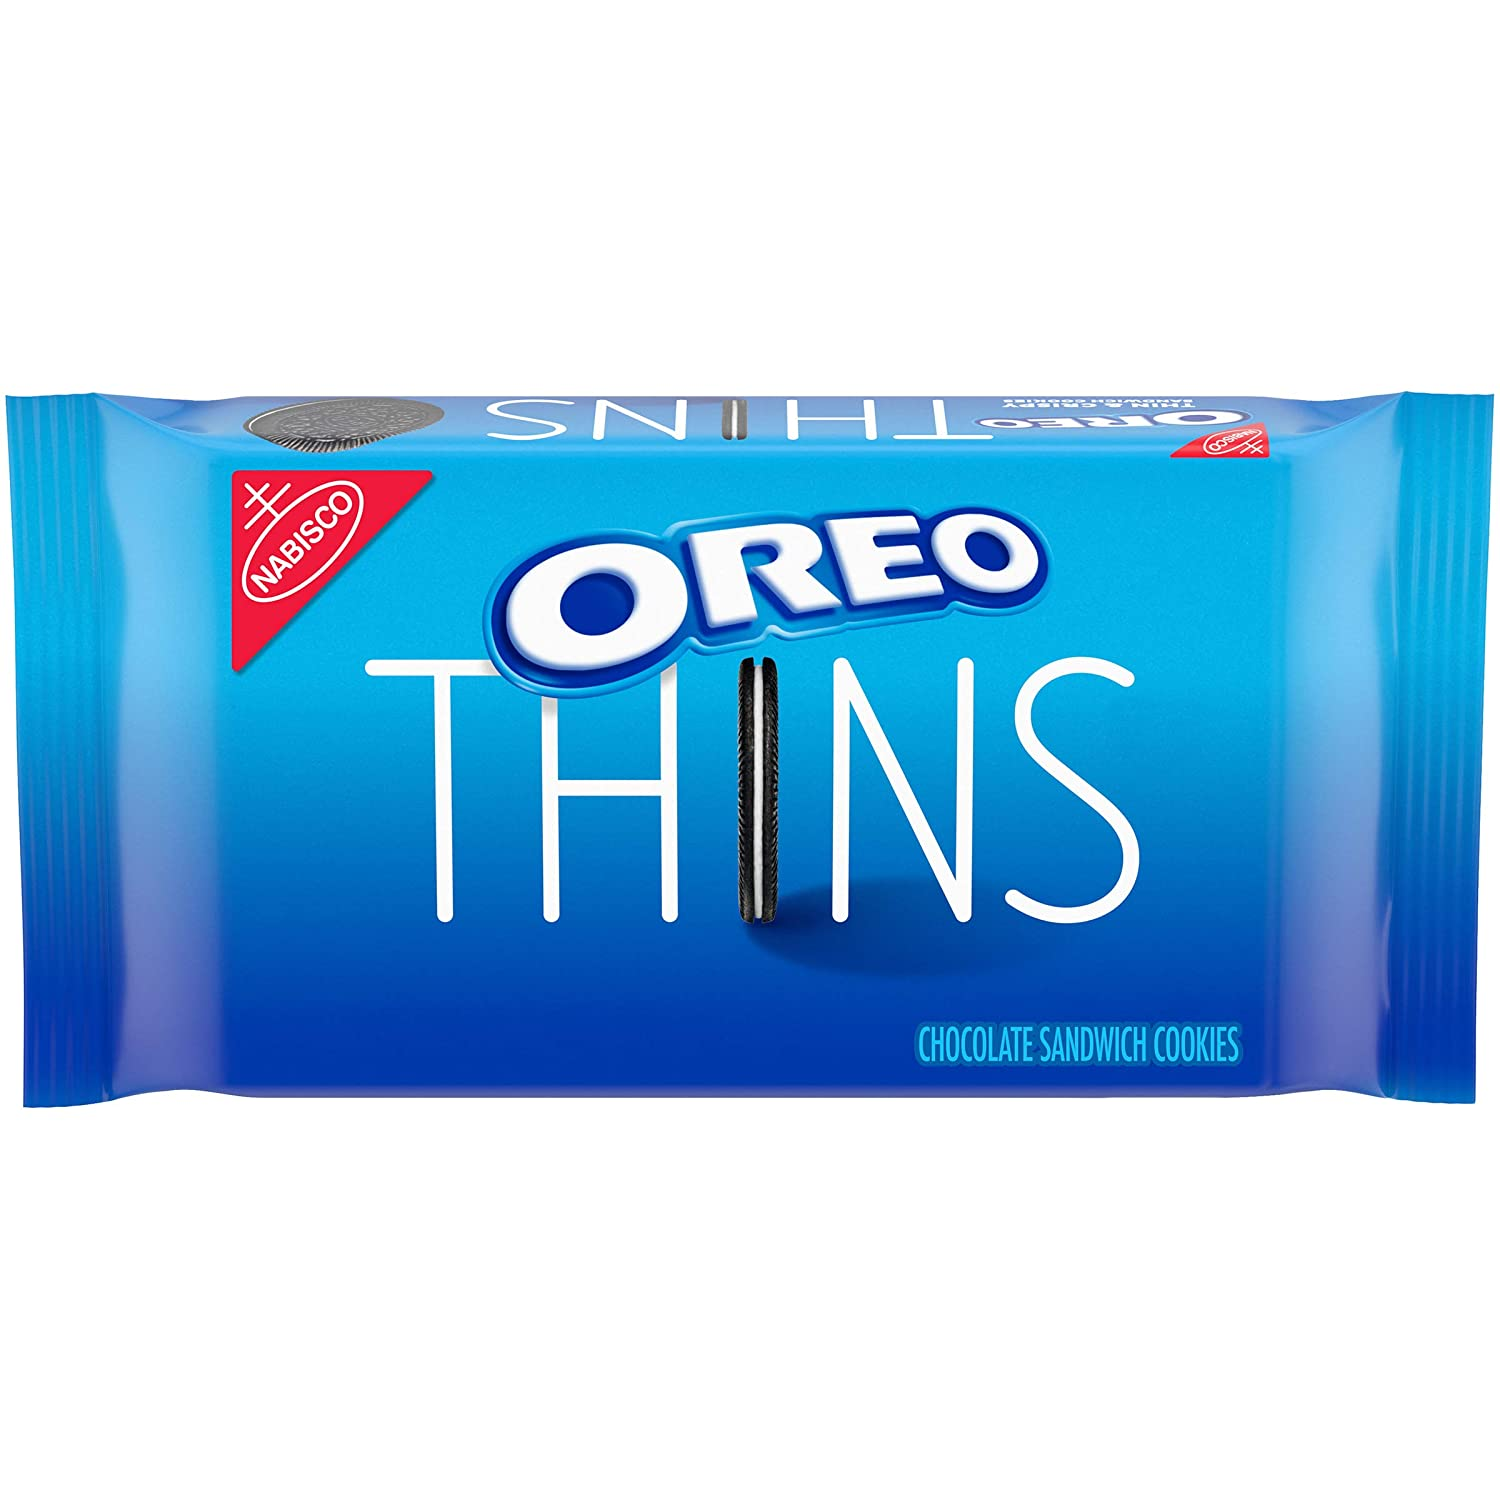 OREO Thins Chocolate Sandwich Cookies, 10.1 oz